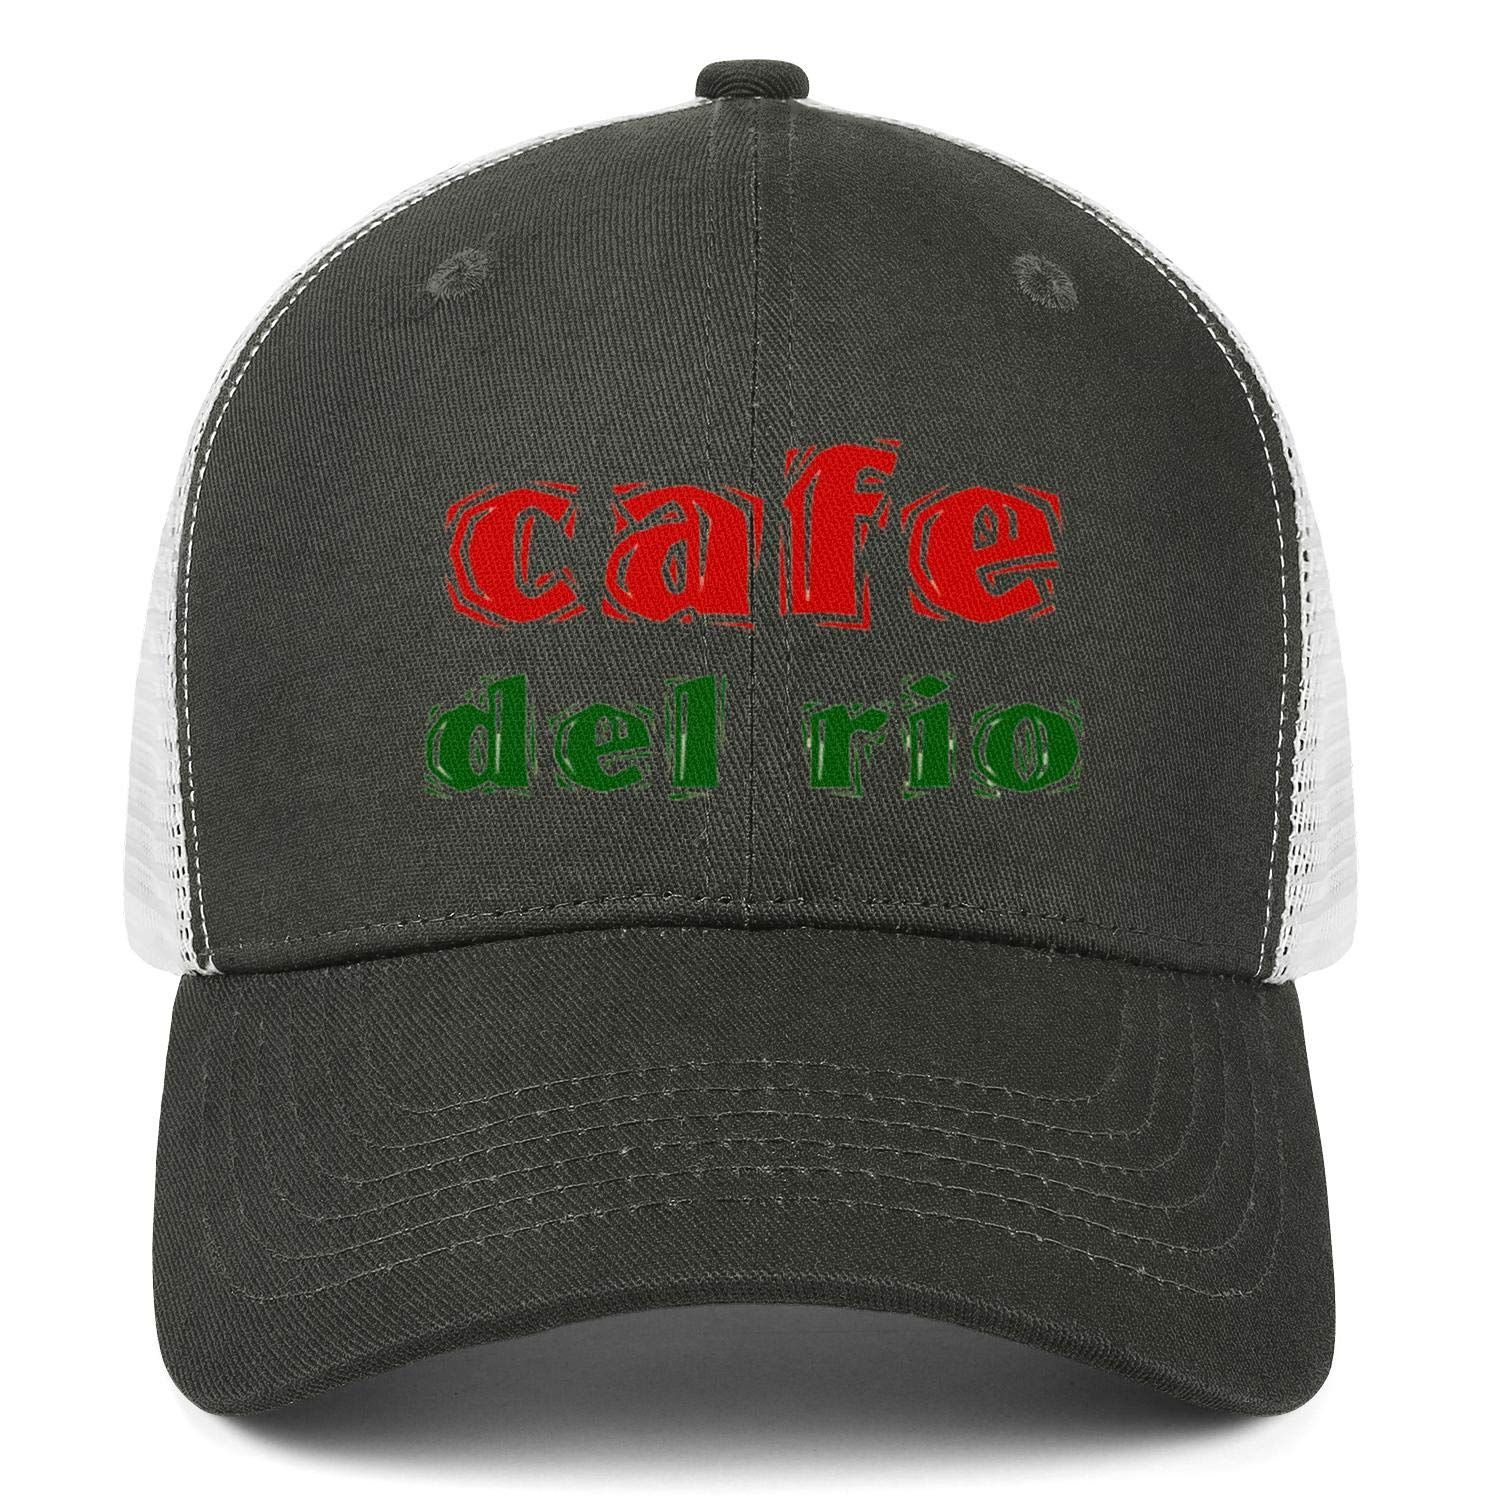 Unisex Cafe Rio Sign Hat Adjustable Fitted Dad Baseball Cap Trucker Hat Cowboy Hat